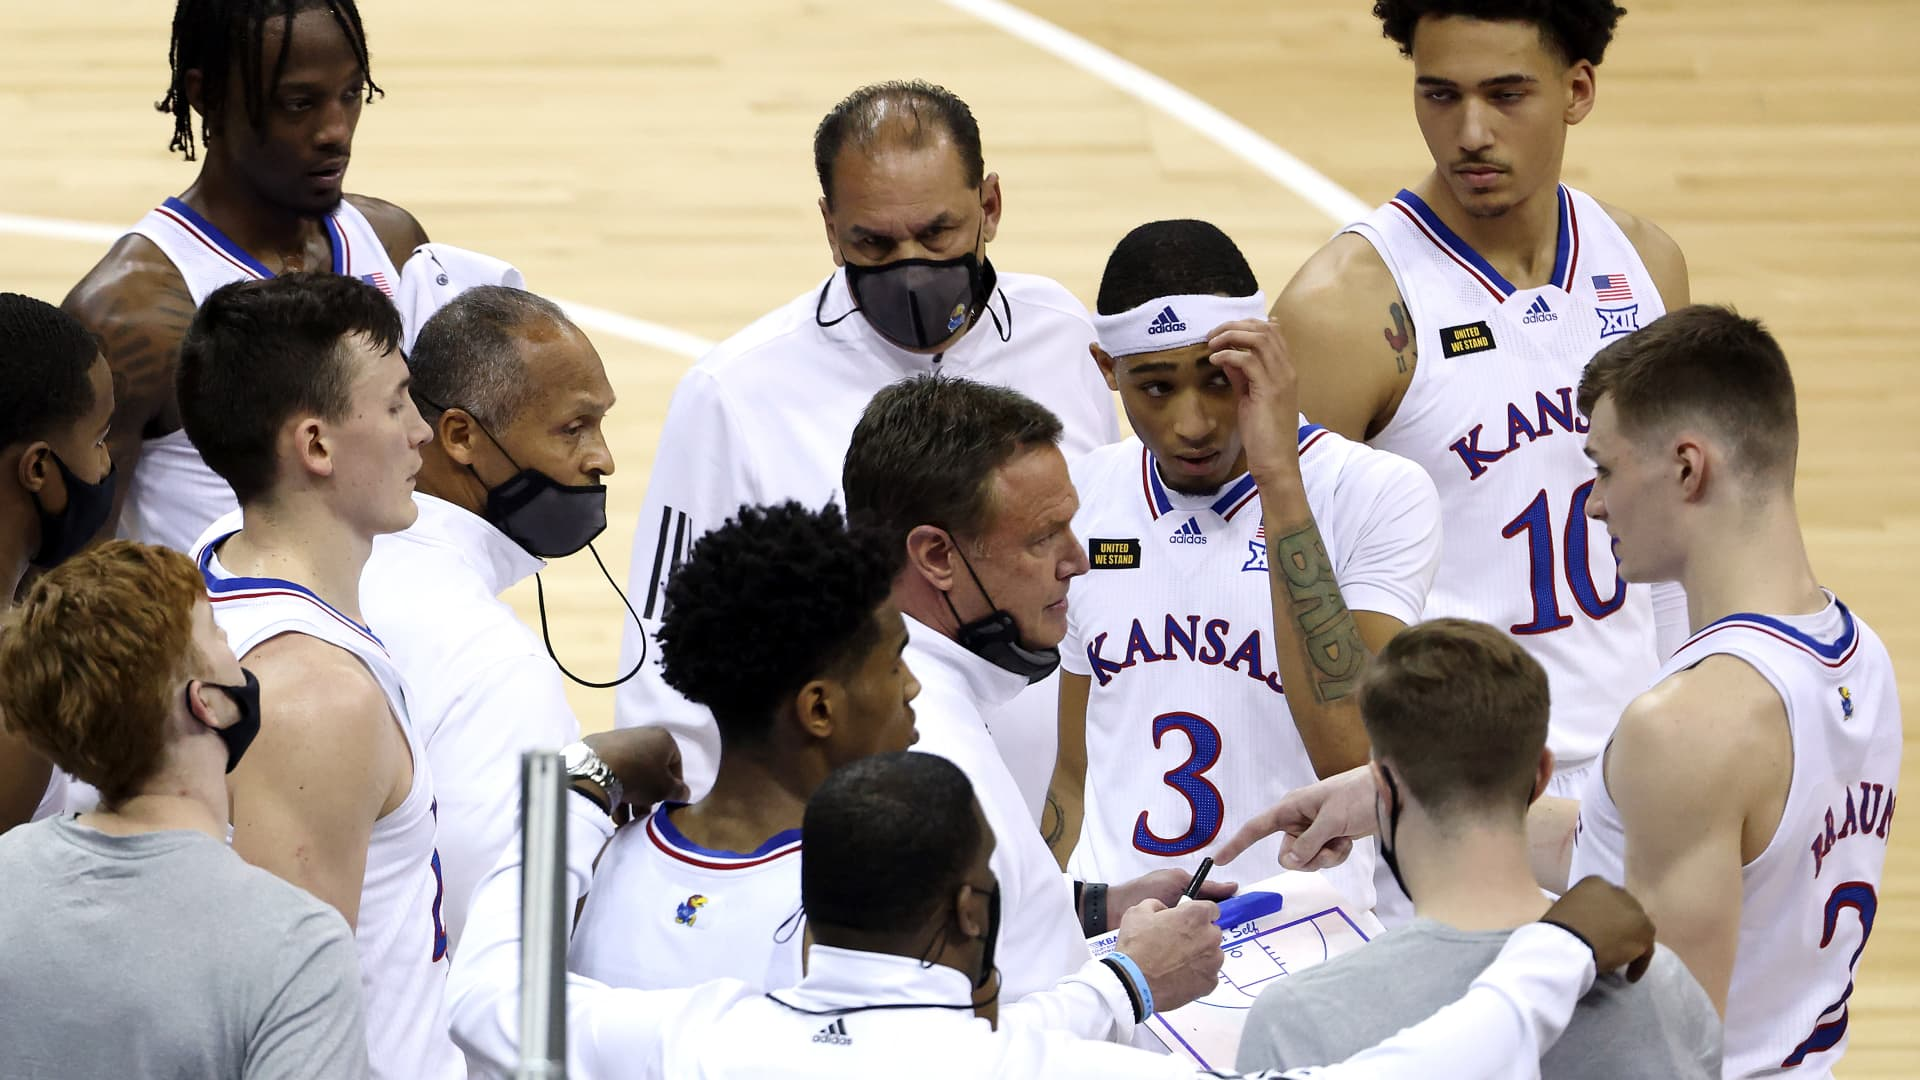 Head coach Bill Self of the Kansas Jayhawks talks with players during a timeout in the quarterfinal game of the Big 12 basketball tournament against the Oklahoma Sooners at the T-Mobile Center on March 11, 2021 in Kansas City, Missouri.